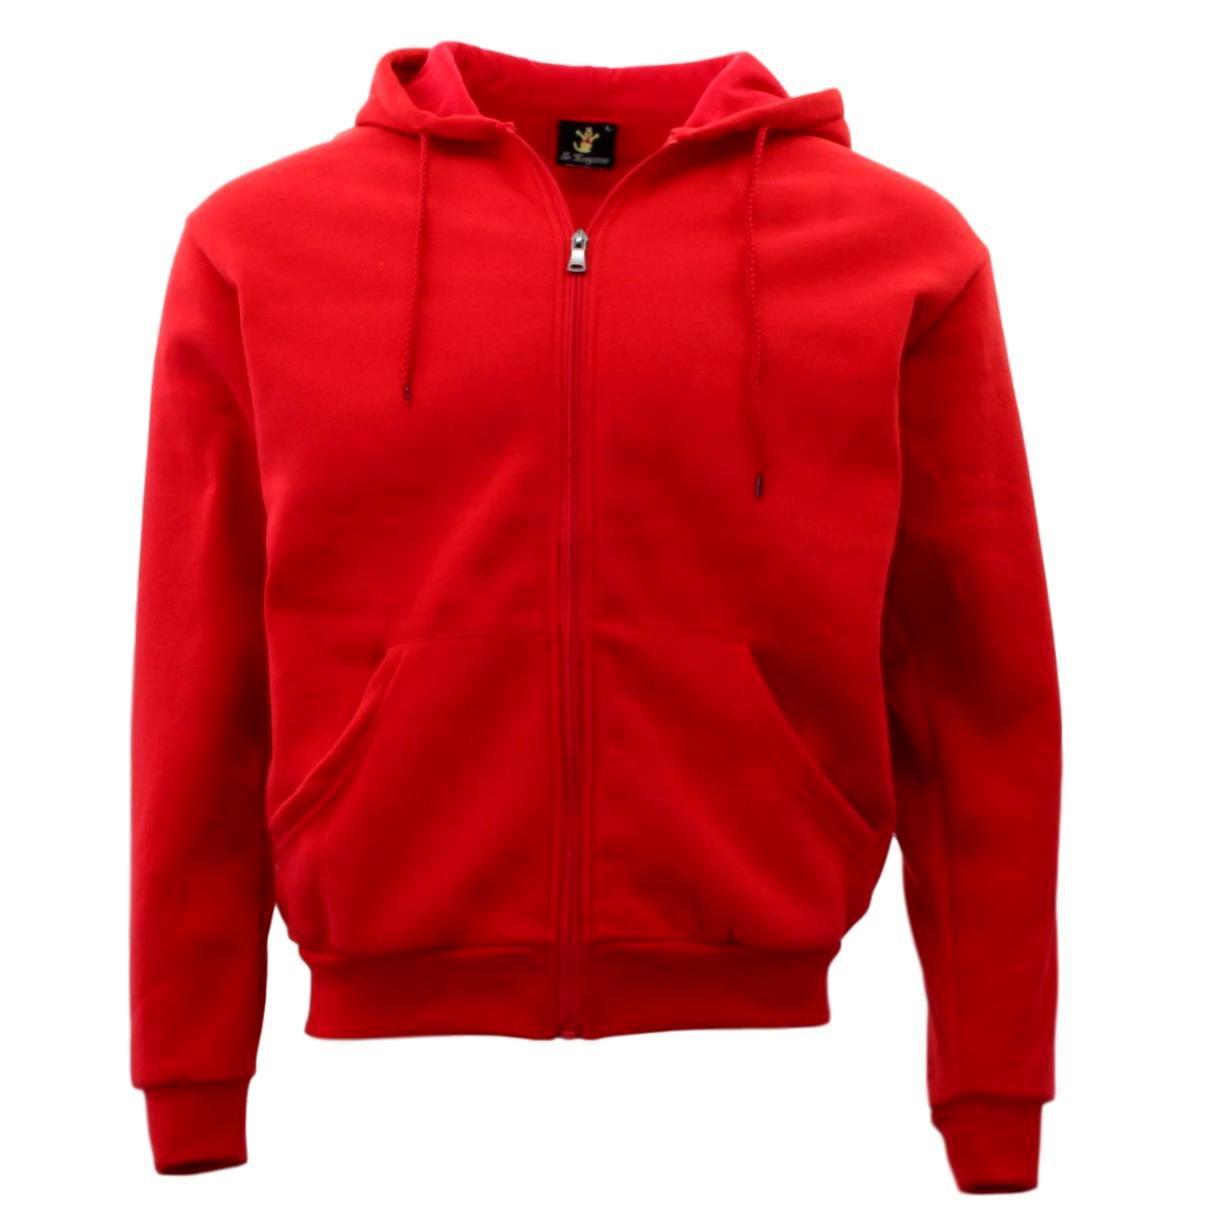 Adult-Unisex-Men-039-s-Zip-Up-Hoodie-w-Fleece-Hooded-Jacket-Jumper-Basic-Blank-Plain thumbnail 45